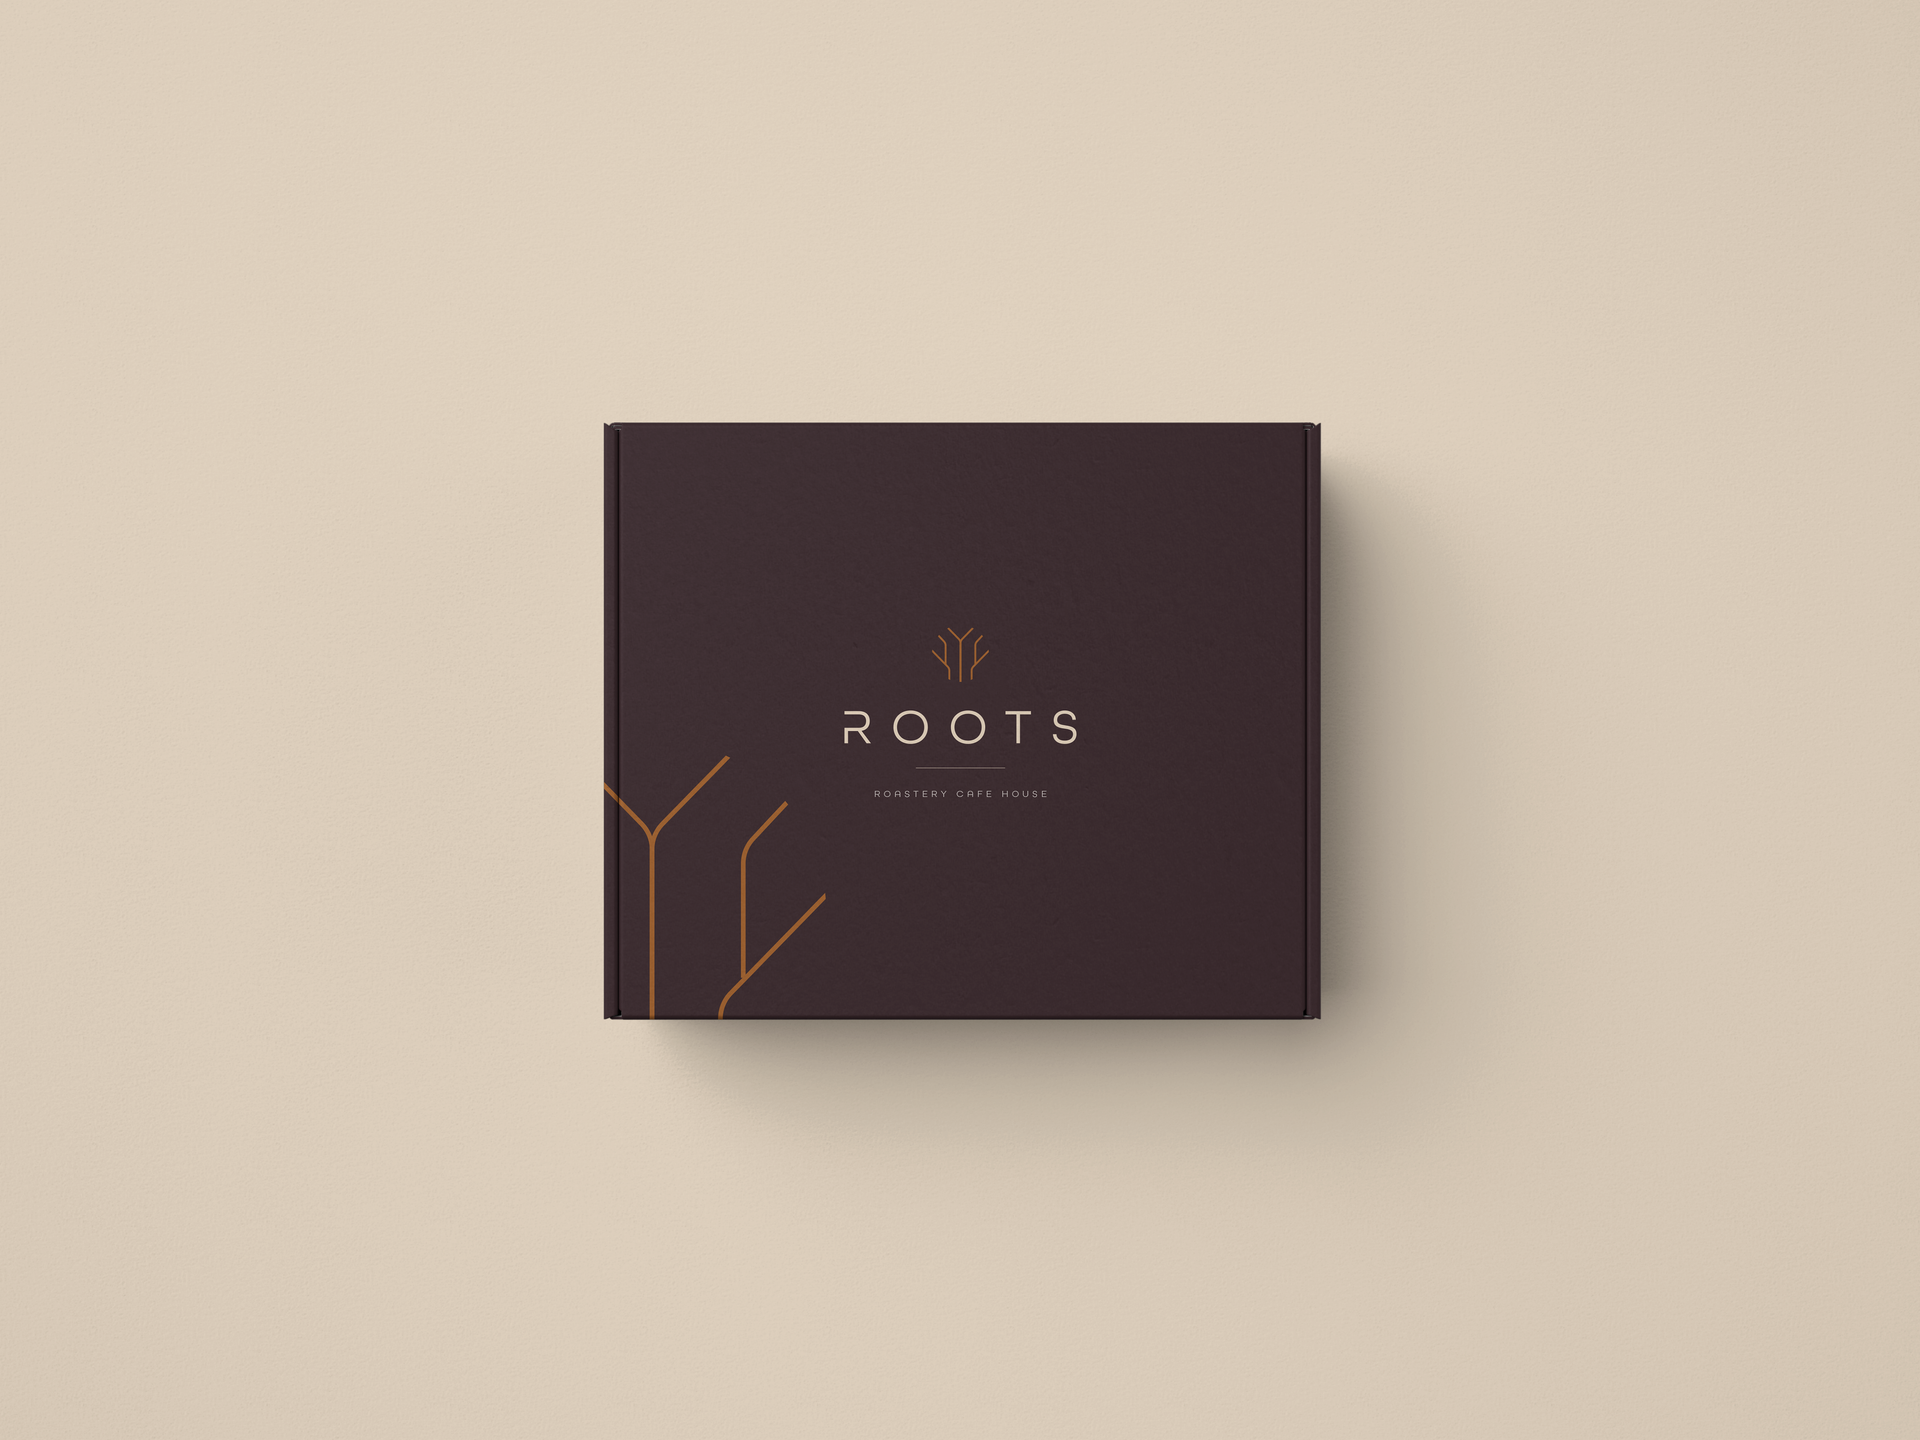 Roots box